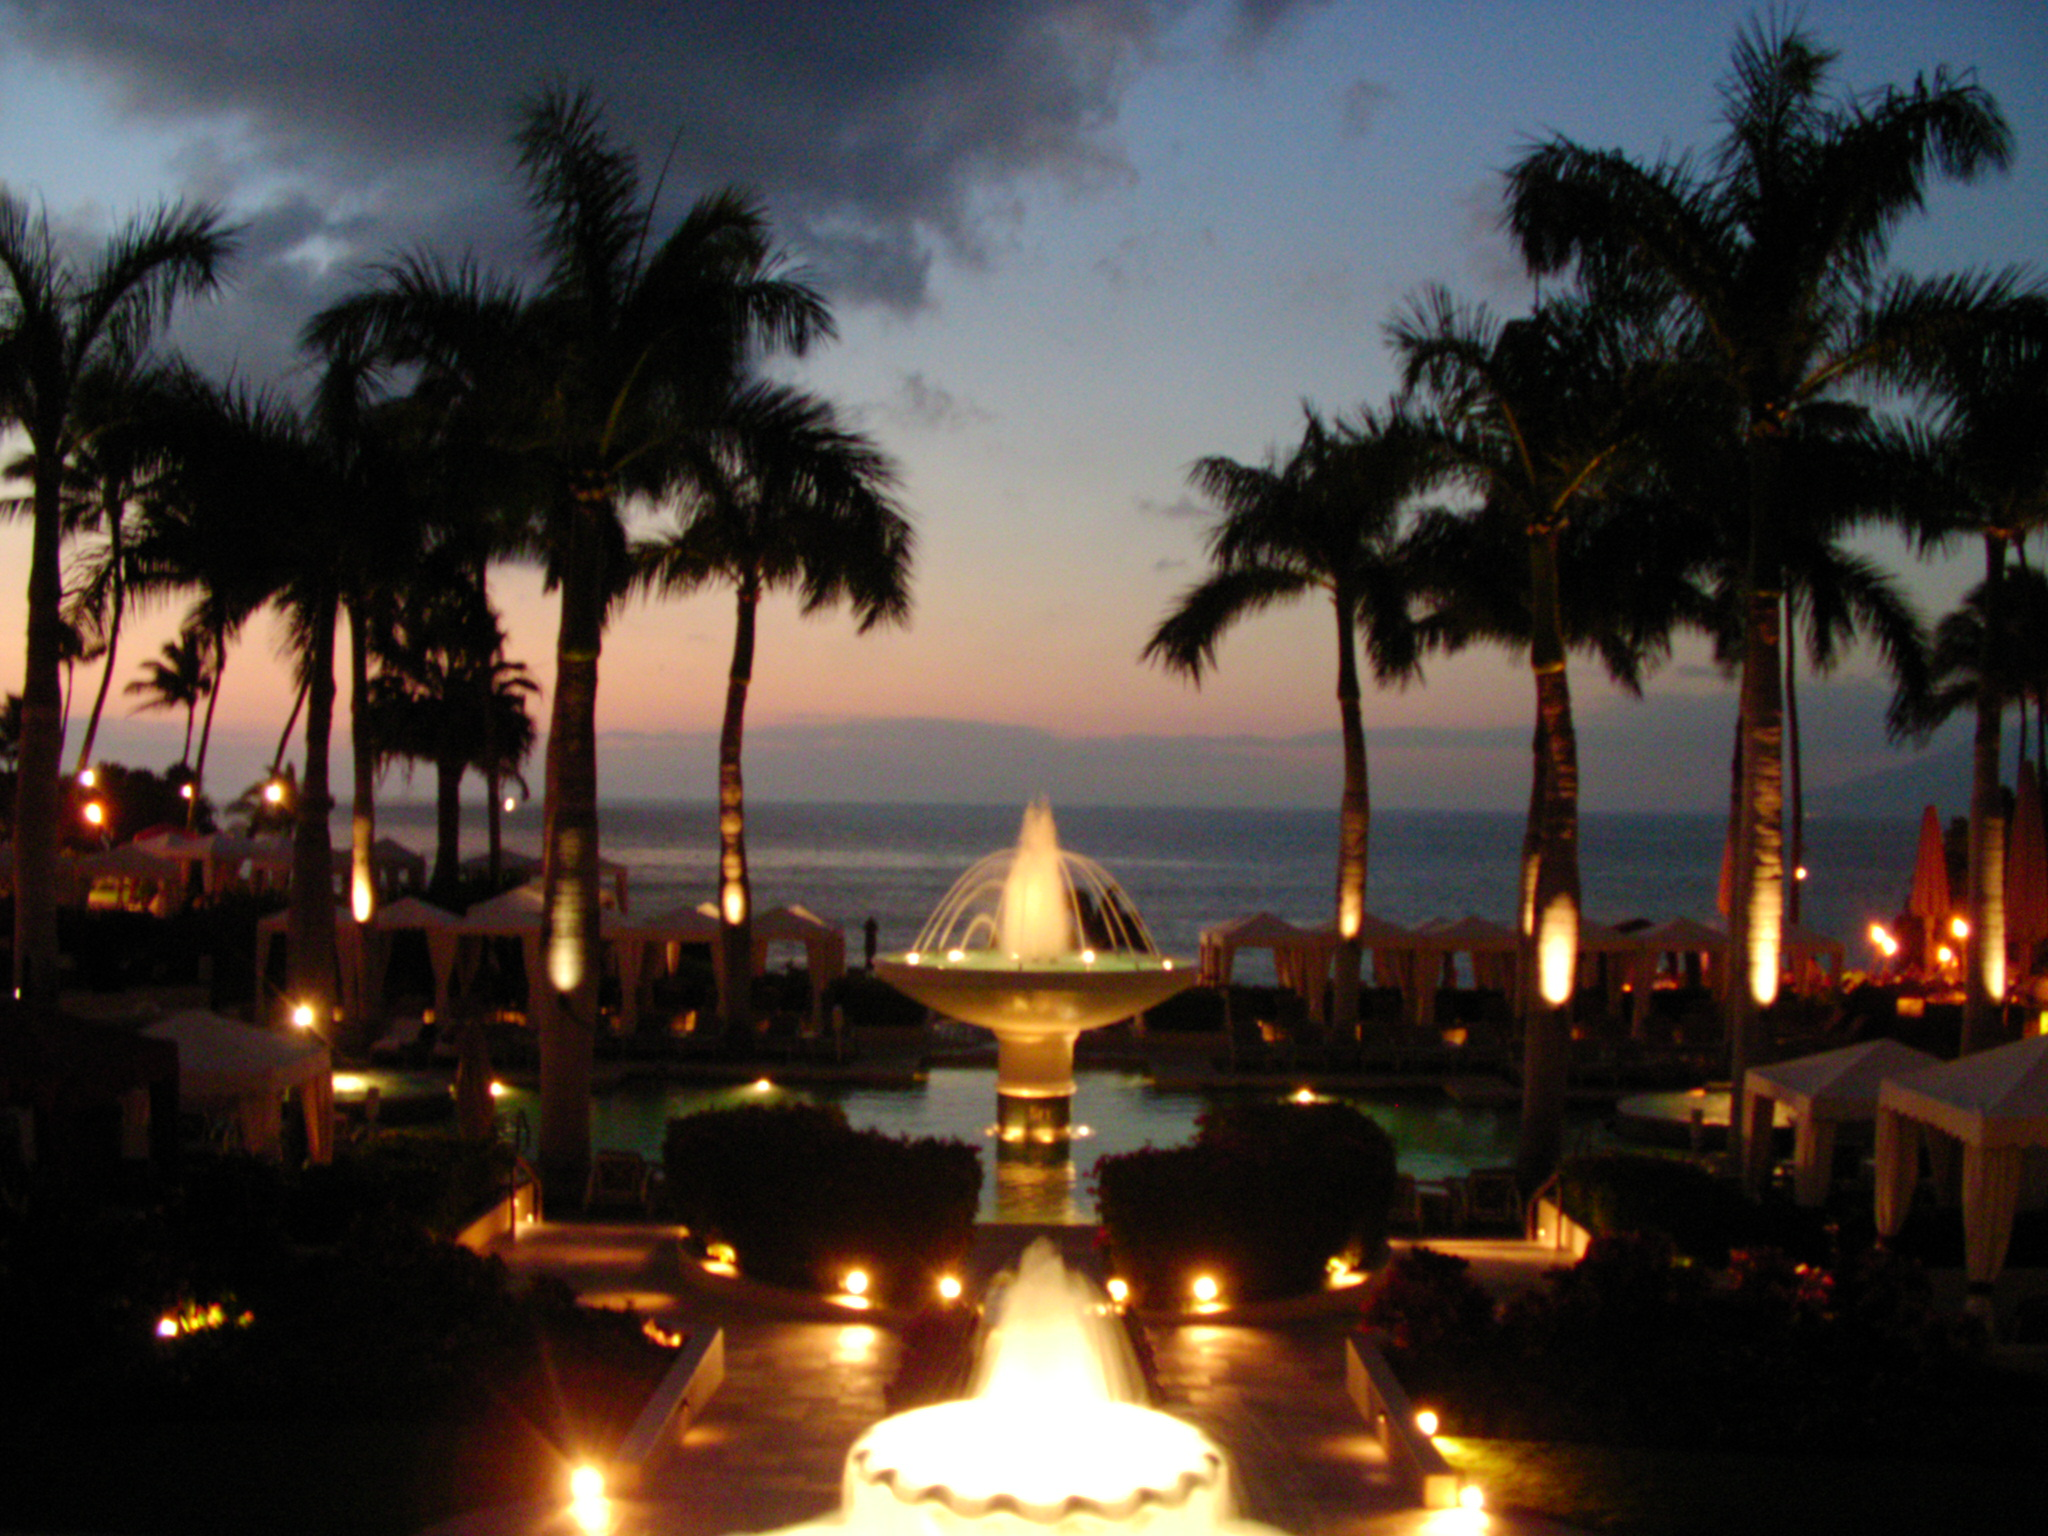 The Four Seasons in Maui